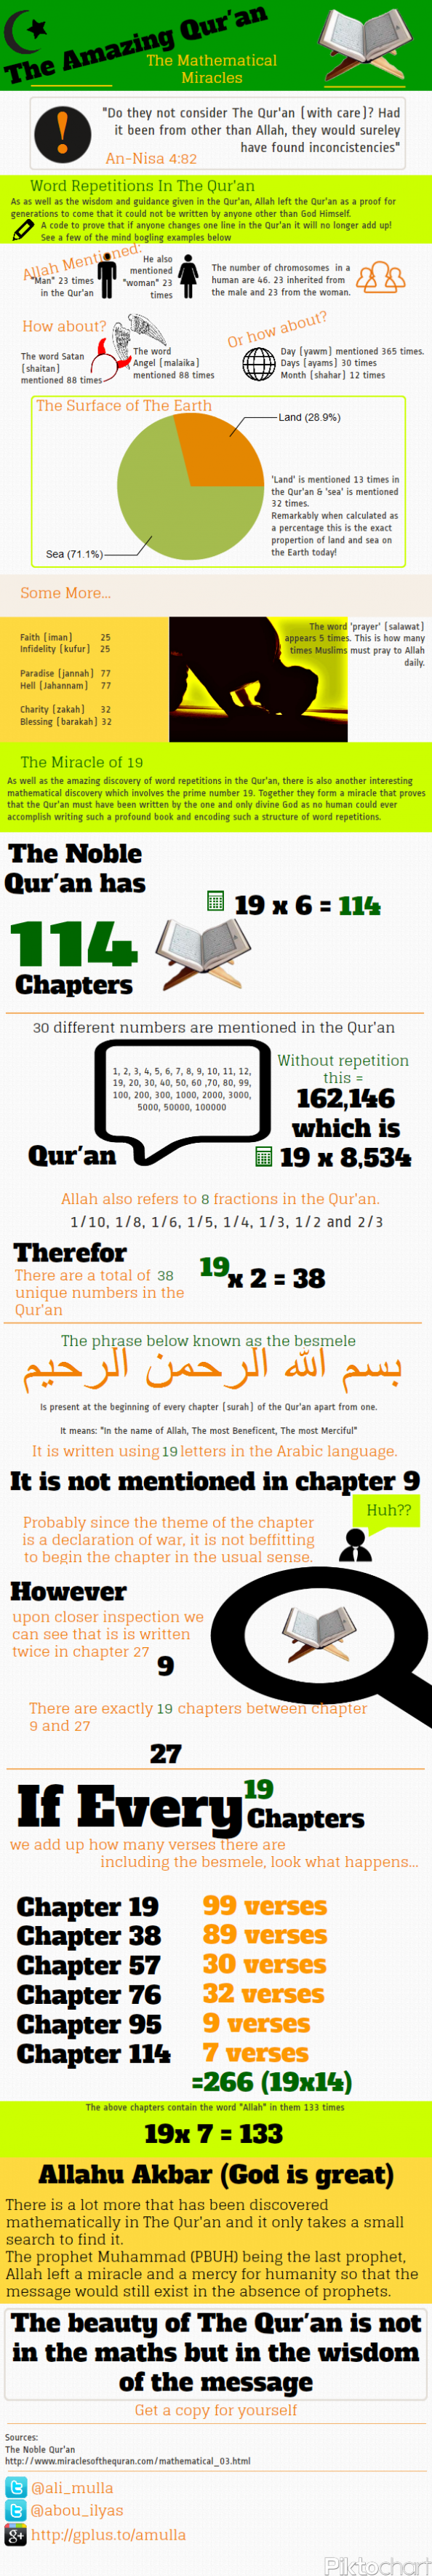 The Amazing Qur'an Infographic